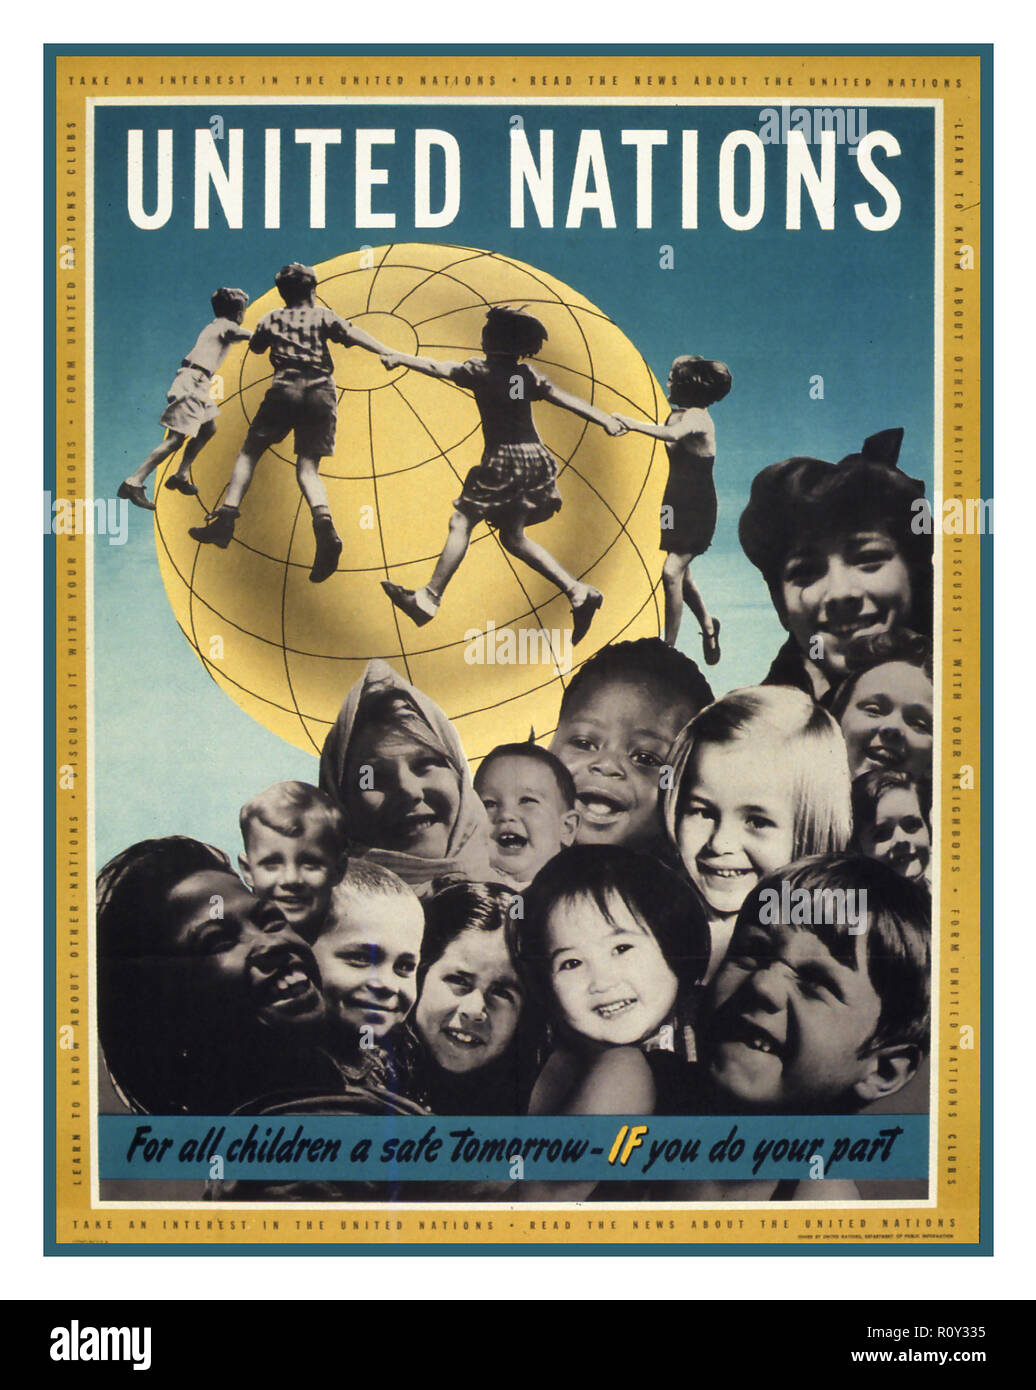 Vintage 1959 United Nations Poster 'Declaration of the Rights of the Child' illustrating a Globe with happy fulfilled children encircling it without boundaries - Stock Image